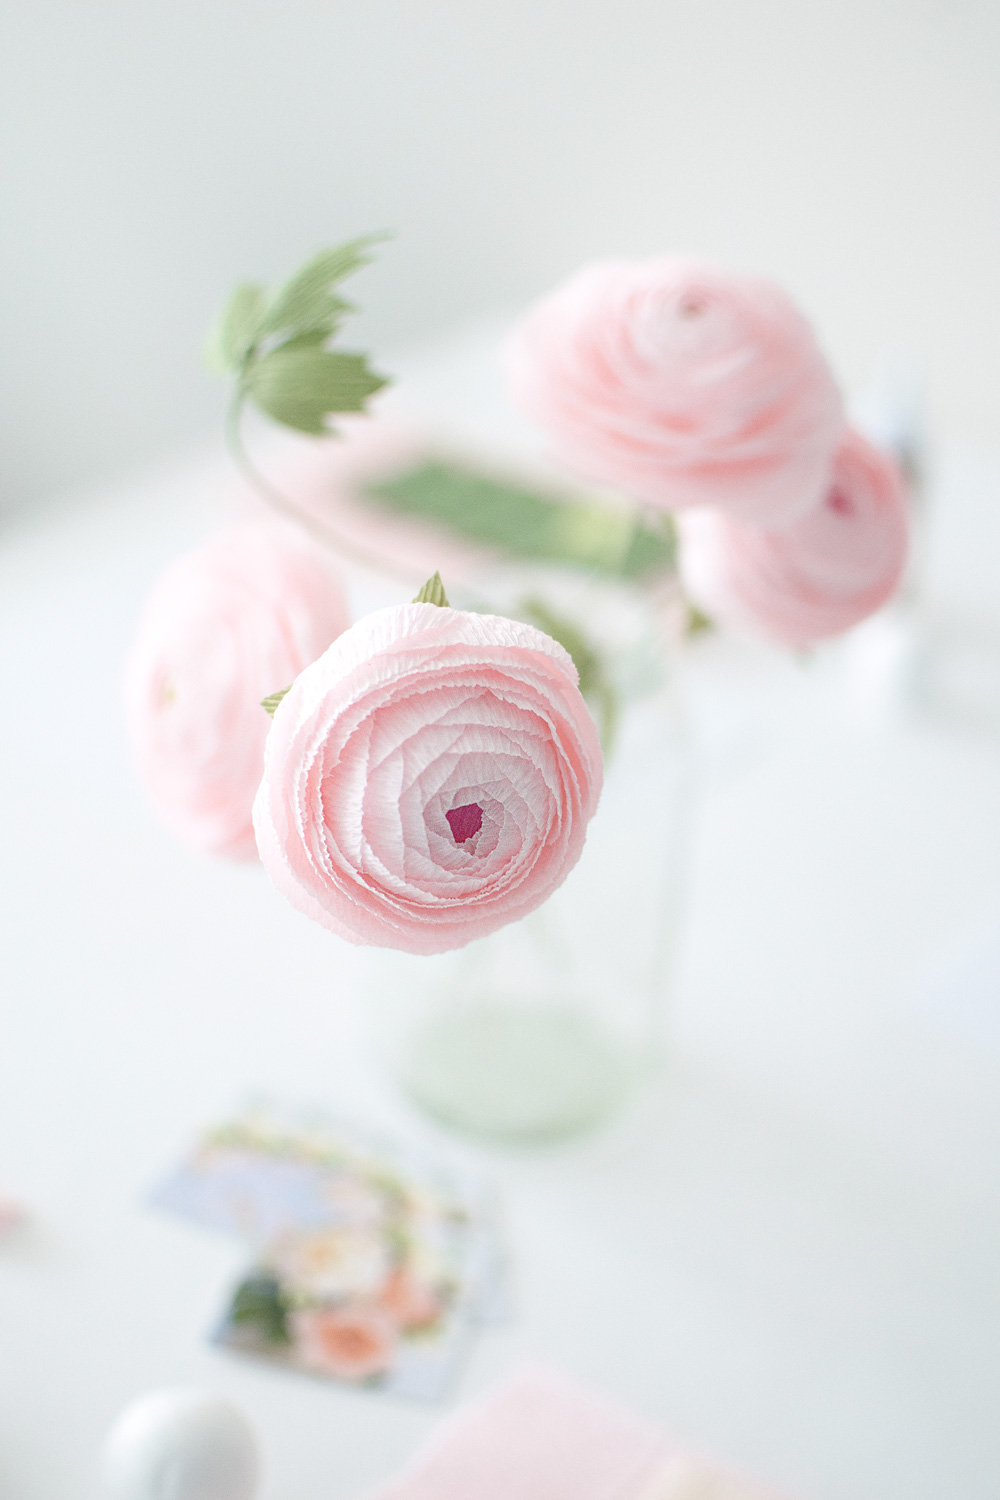 Paper-Flower-Workshop-for-Bachelorette-with-Ranunculus-by-Crafted-to-Bloom-craftedtobloom-paperflowers.jpg